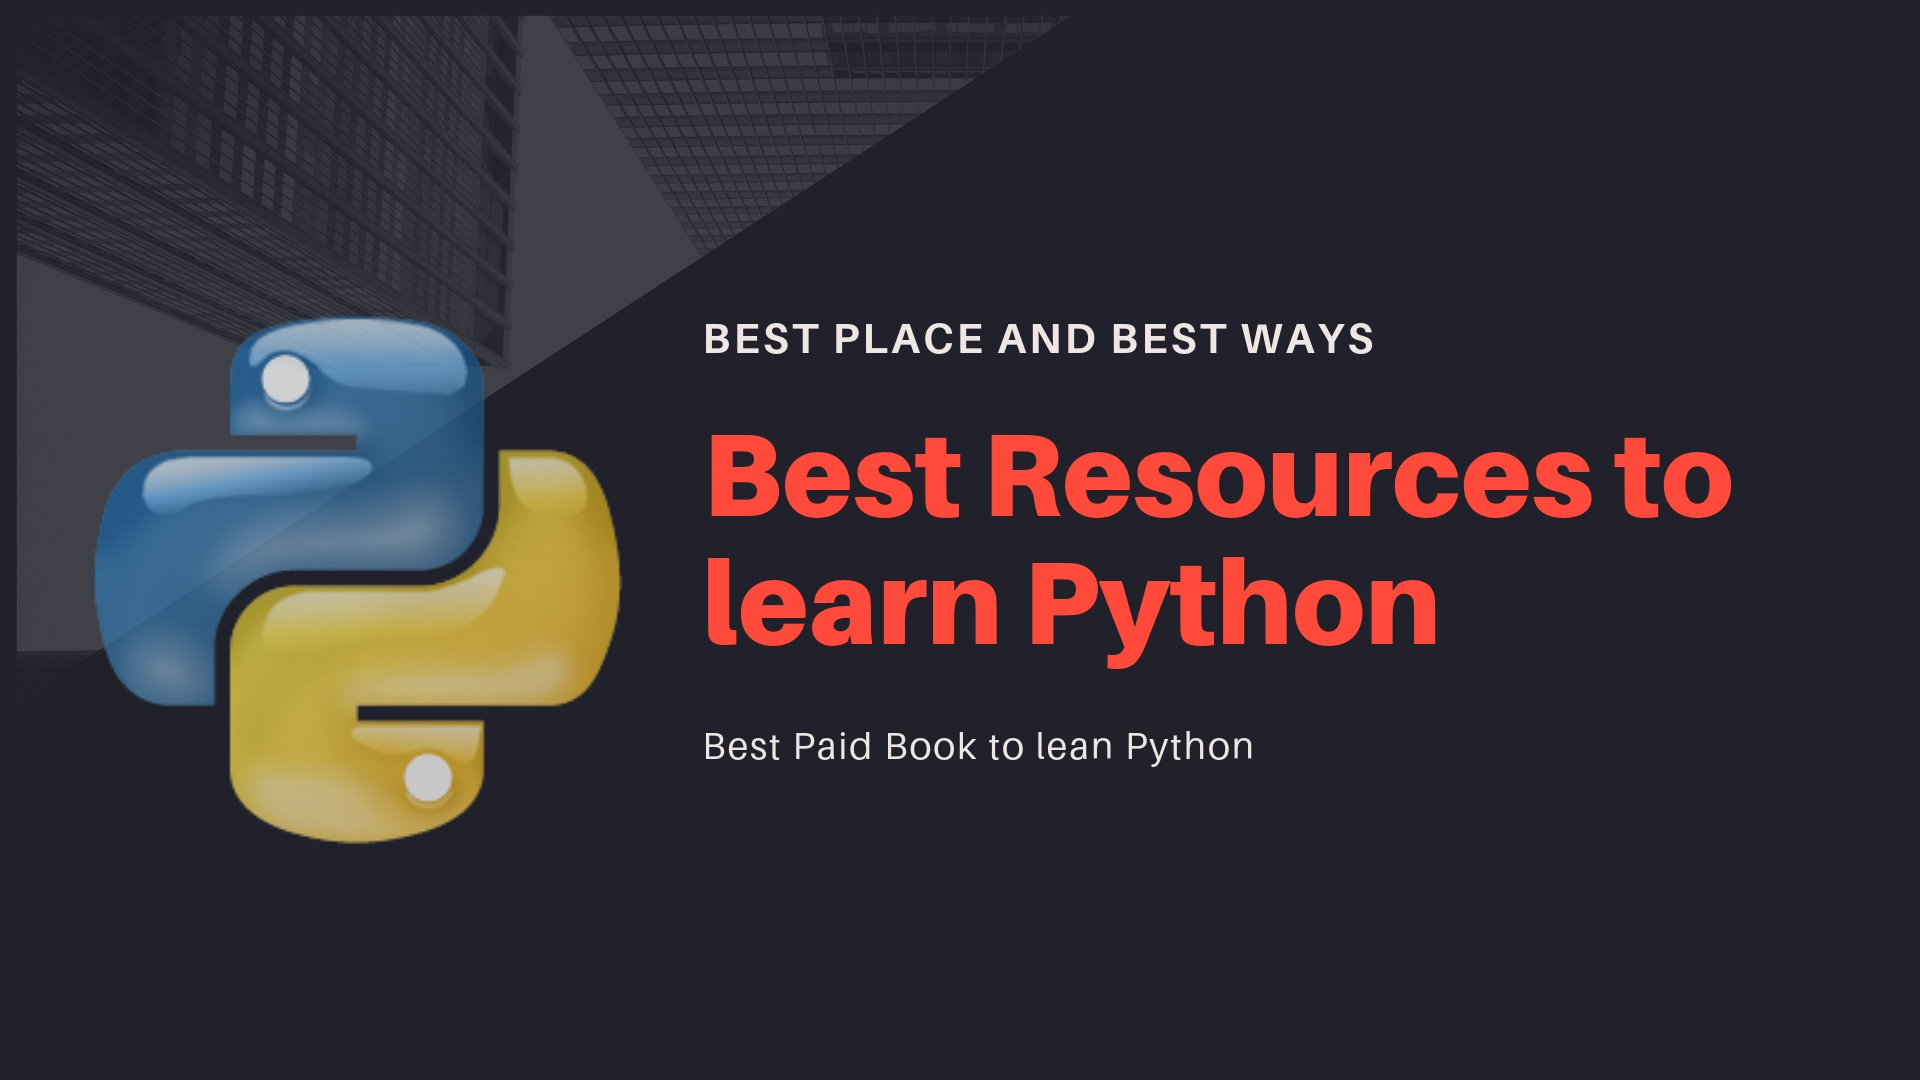 Best resources, place, and books to learn python